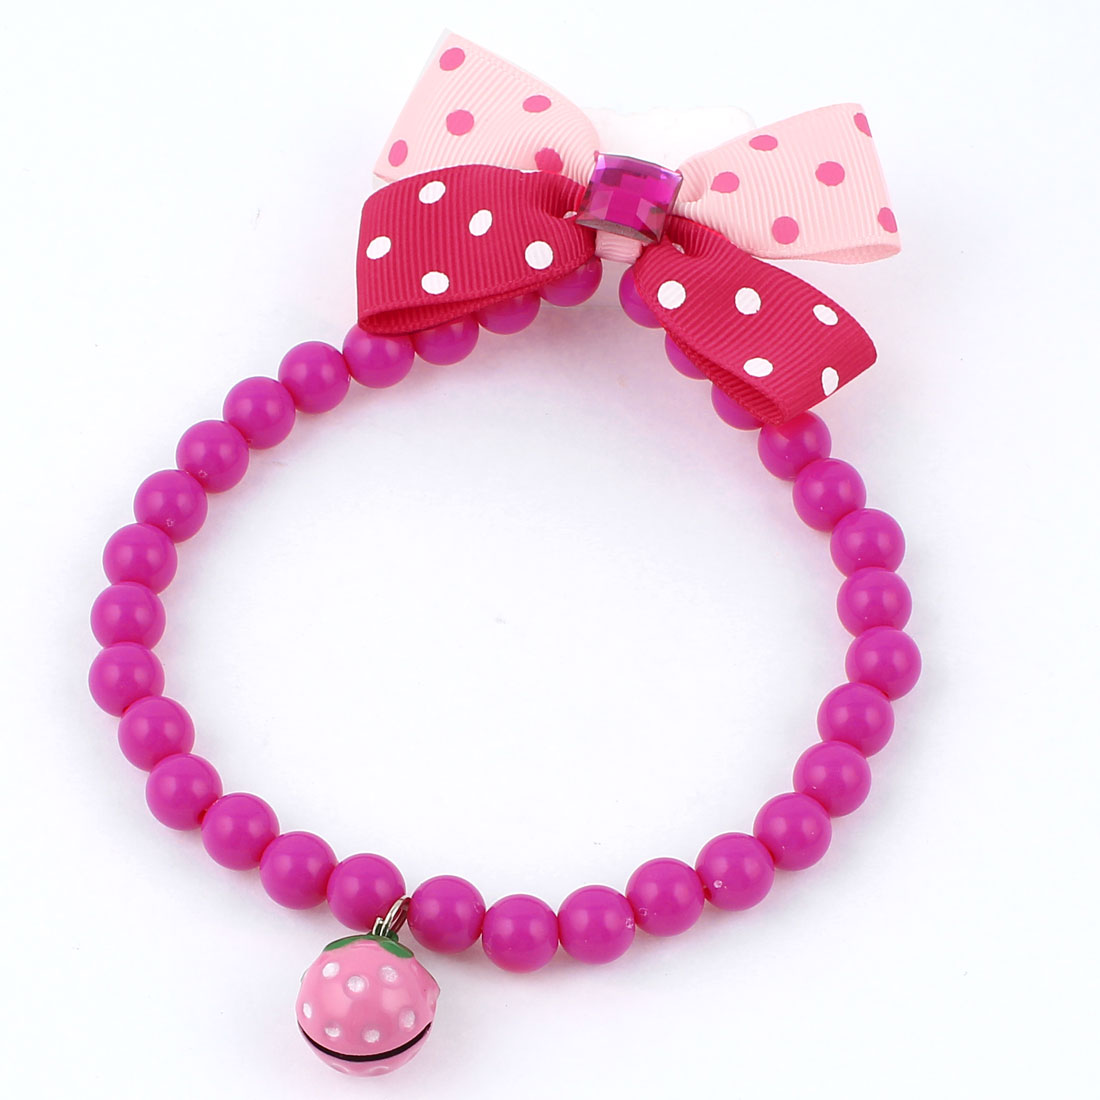 Faux Crystal Bowtie Accent Pet Dog Plastic Beads Collar Necklace Fuchsia Red Pink M